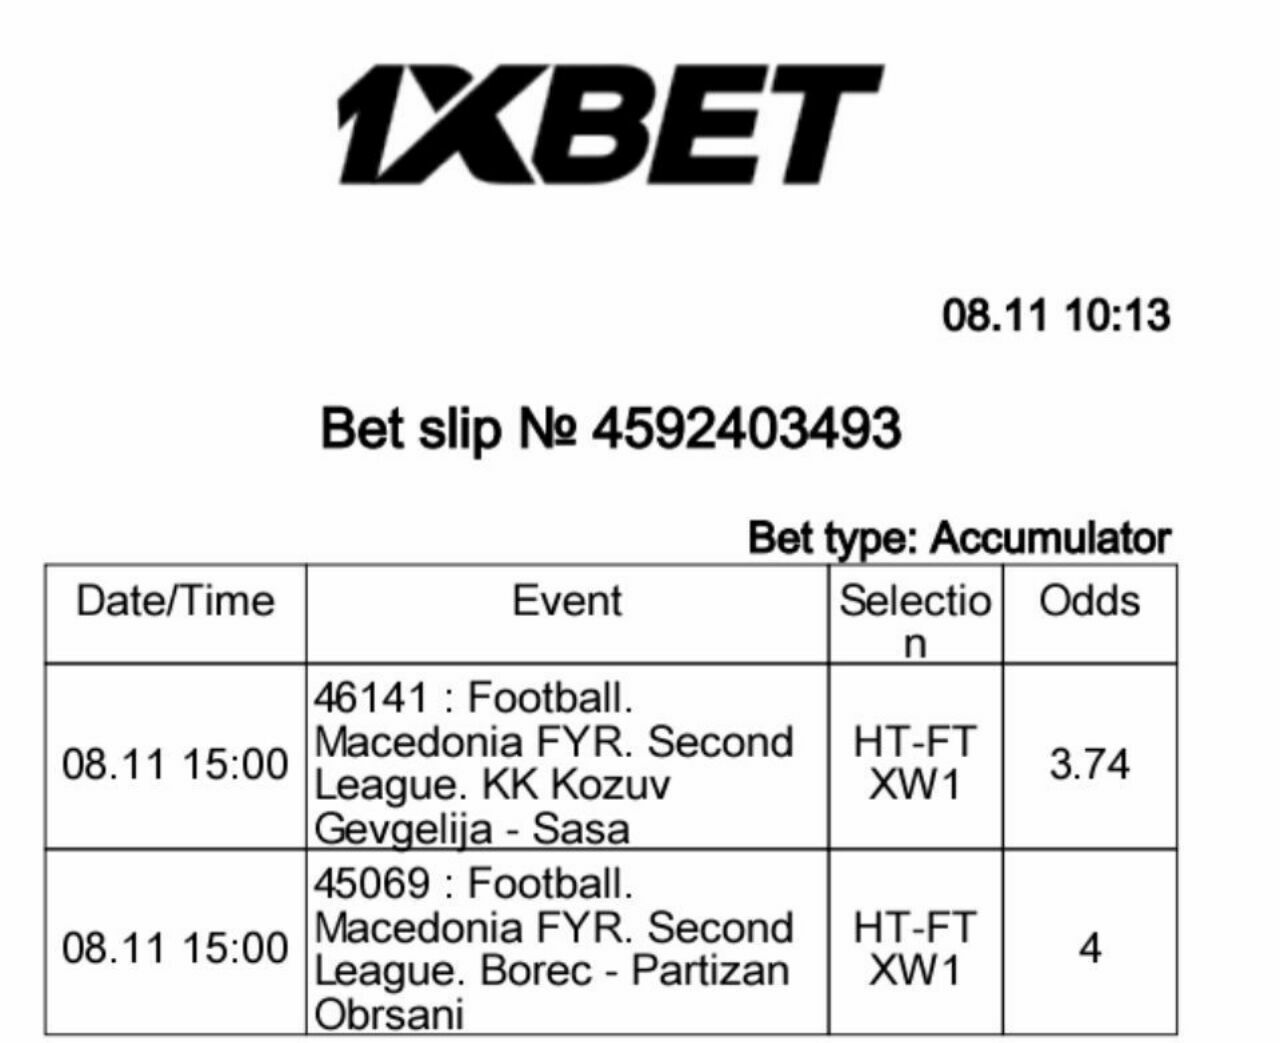 Dropping Odds Ht Ft